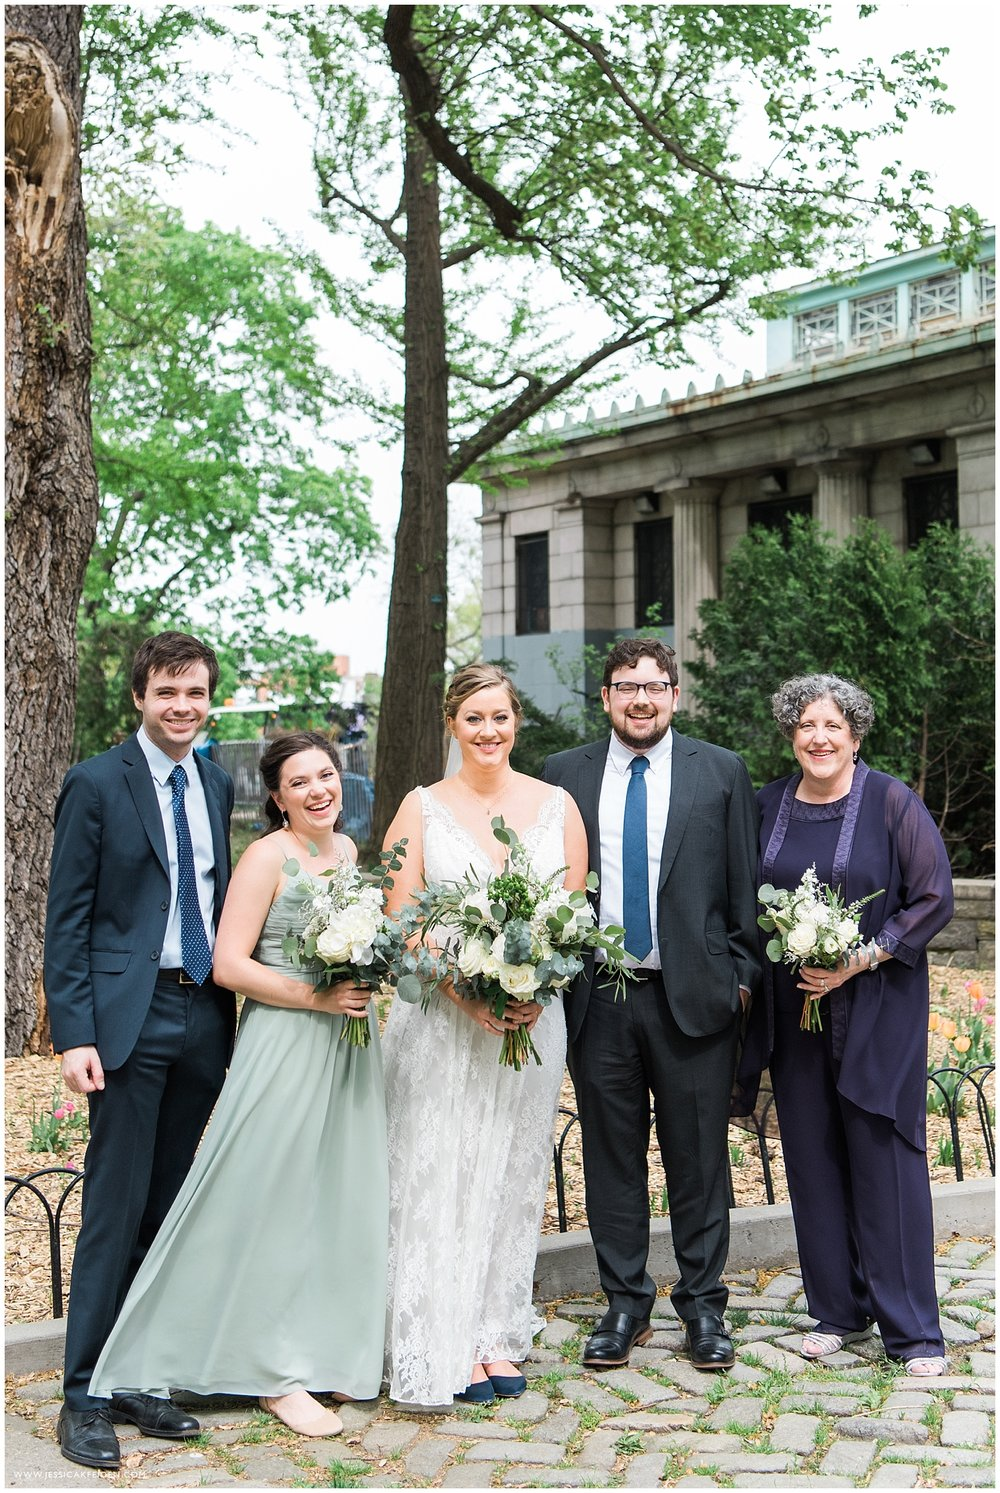 Jessica K Feiden Photography_Margaux+Tim's Irondale Center Brooklyn Wedding_0018.jpg